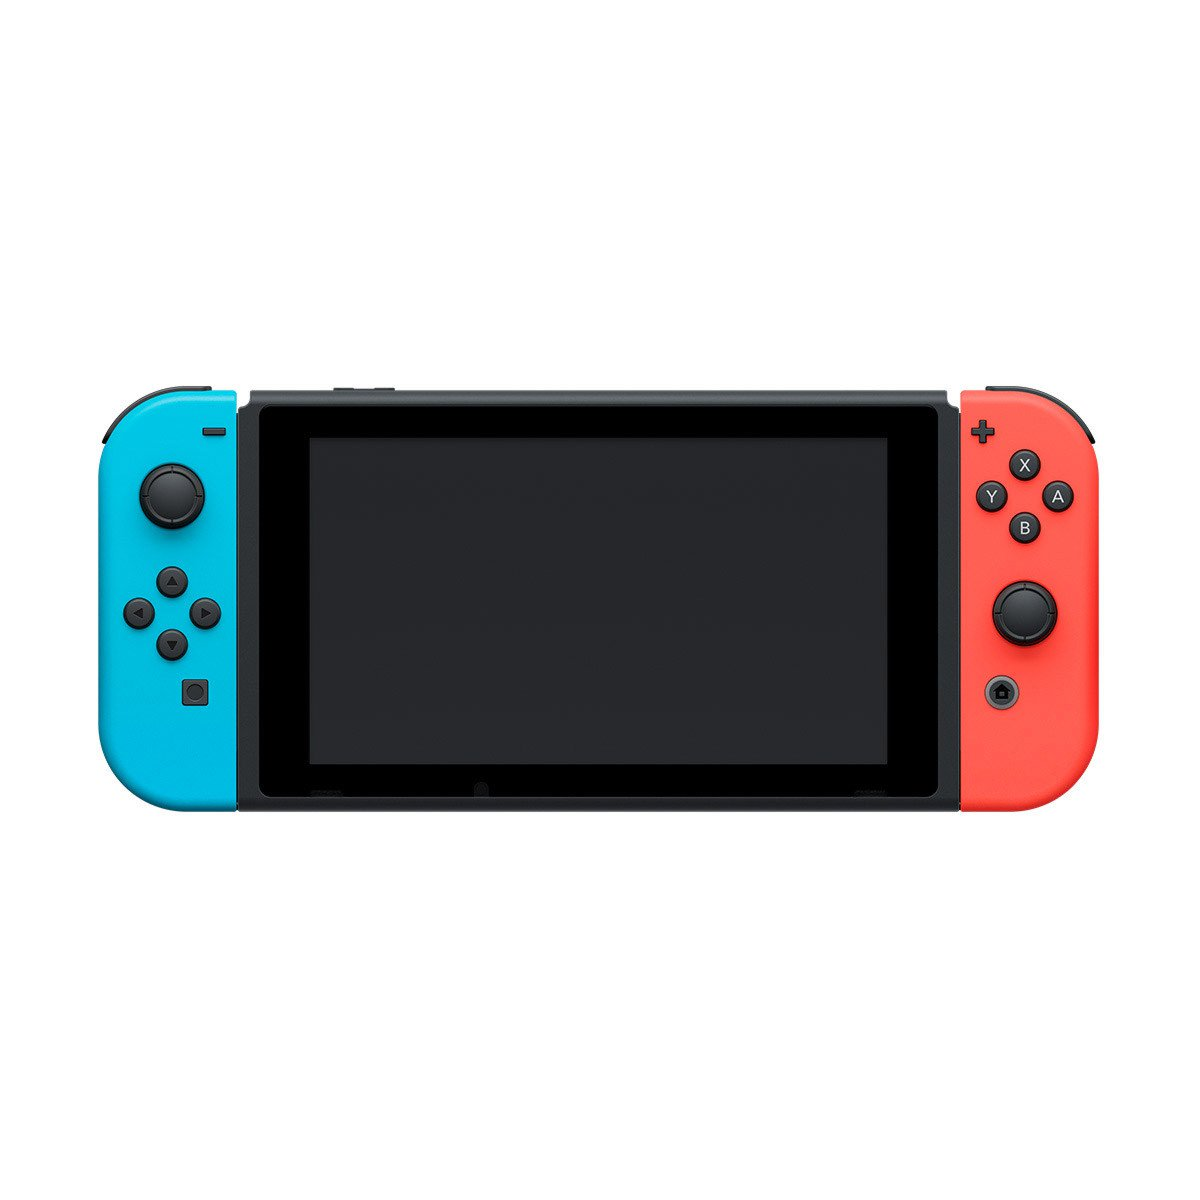 nintendo_switch_neon_joy_con_console_5_.jpg